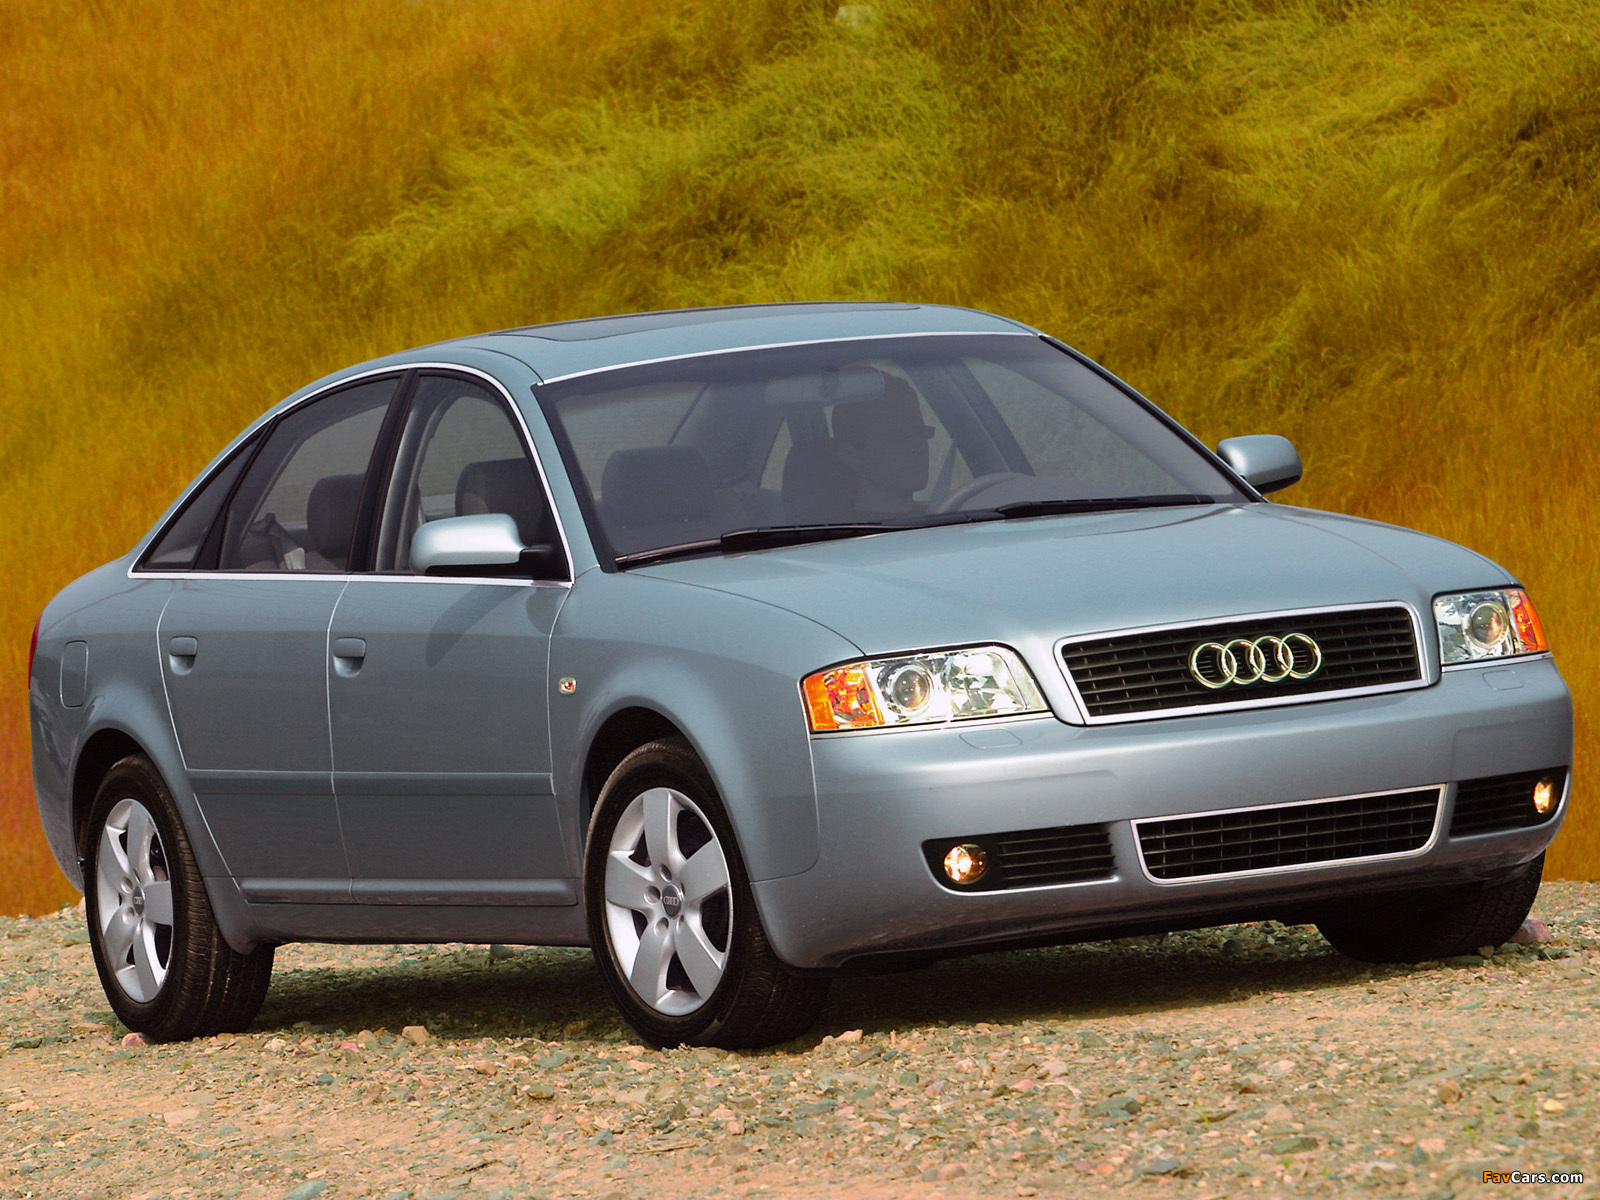 2001 audi a6 4b c5 pictures information and specs. Black Bedroom Furniture Sets. Home Design Ideas